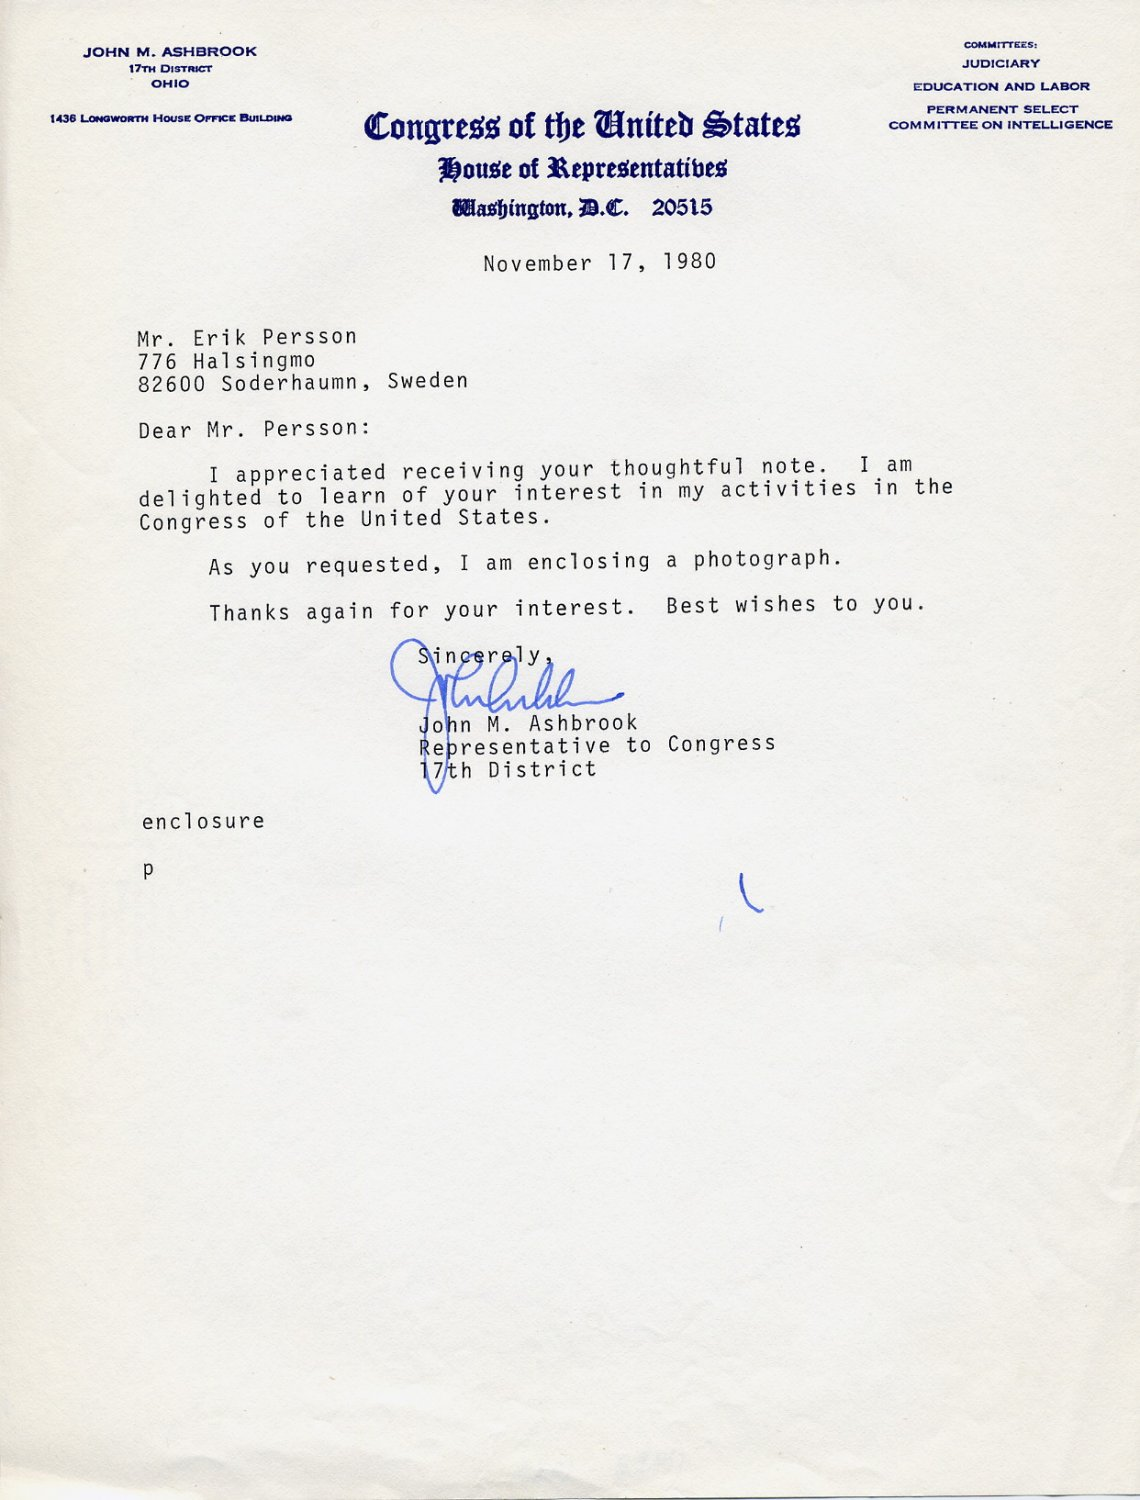 1961-82 US Representative from Ohio JOHN M ASHBROOK Typed Letter Signed 1980